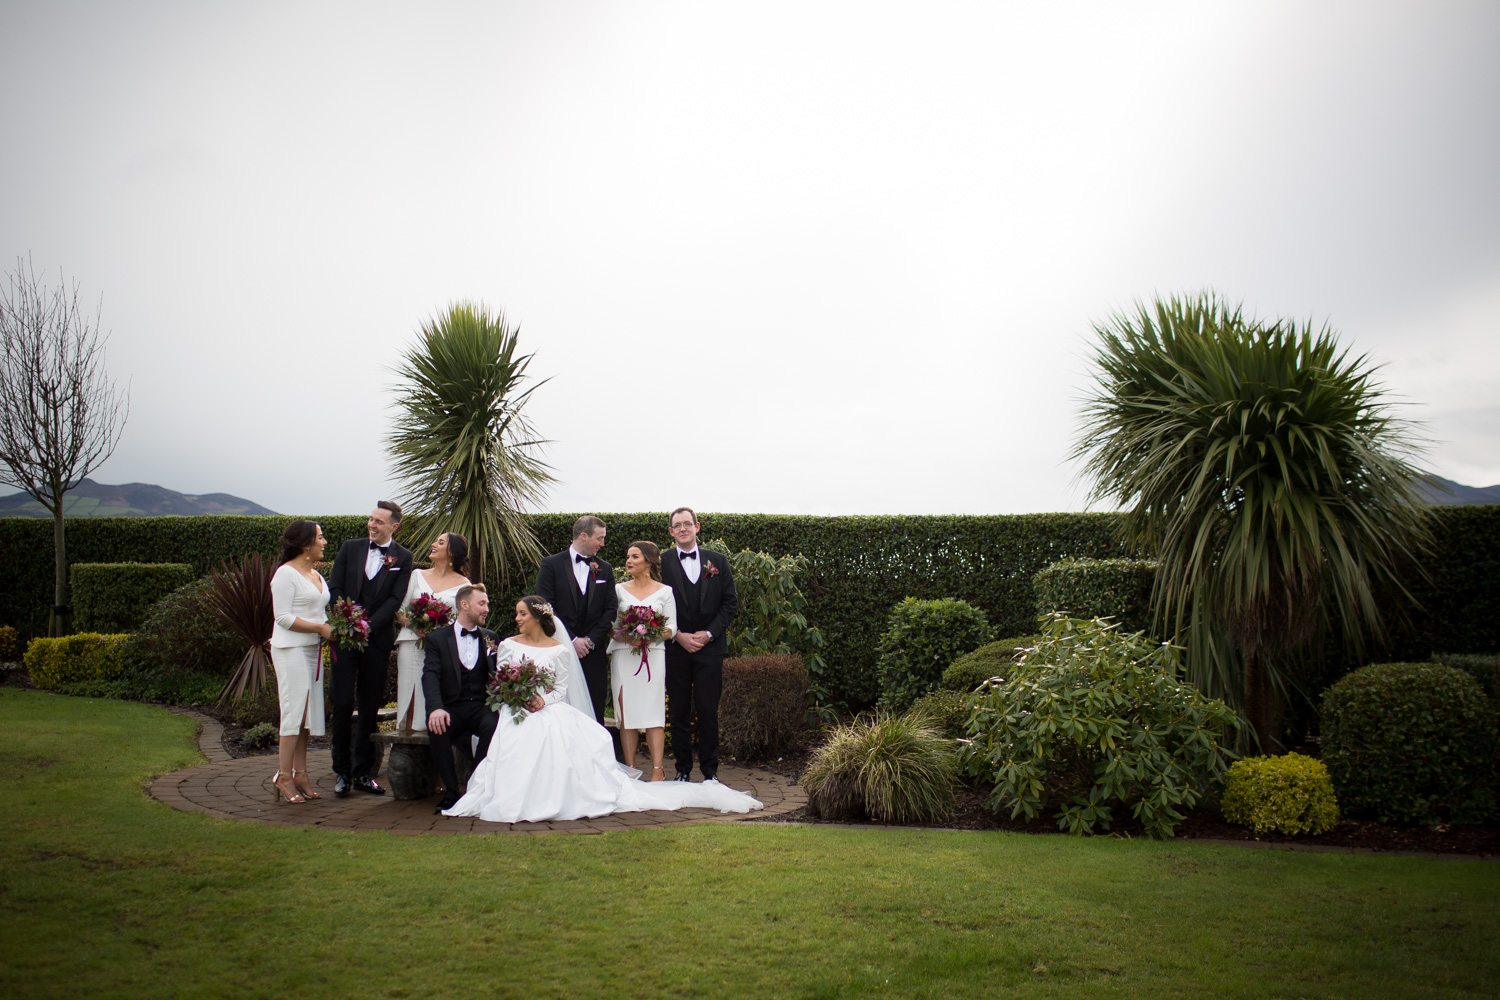 Mark_Barnes_Northern_Ireland_wedding_photographer_Innishowen_Gateway_Donegal_Wedding_photography_Donegal_wedding_photographer-46.jpg